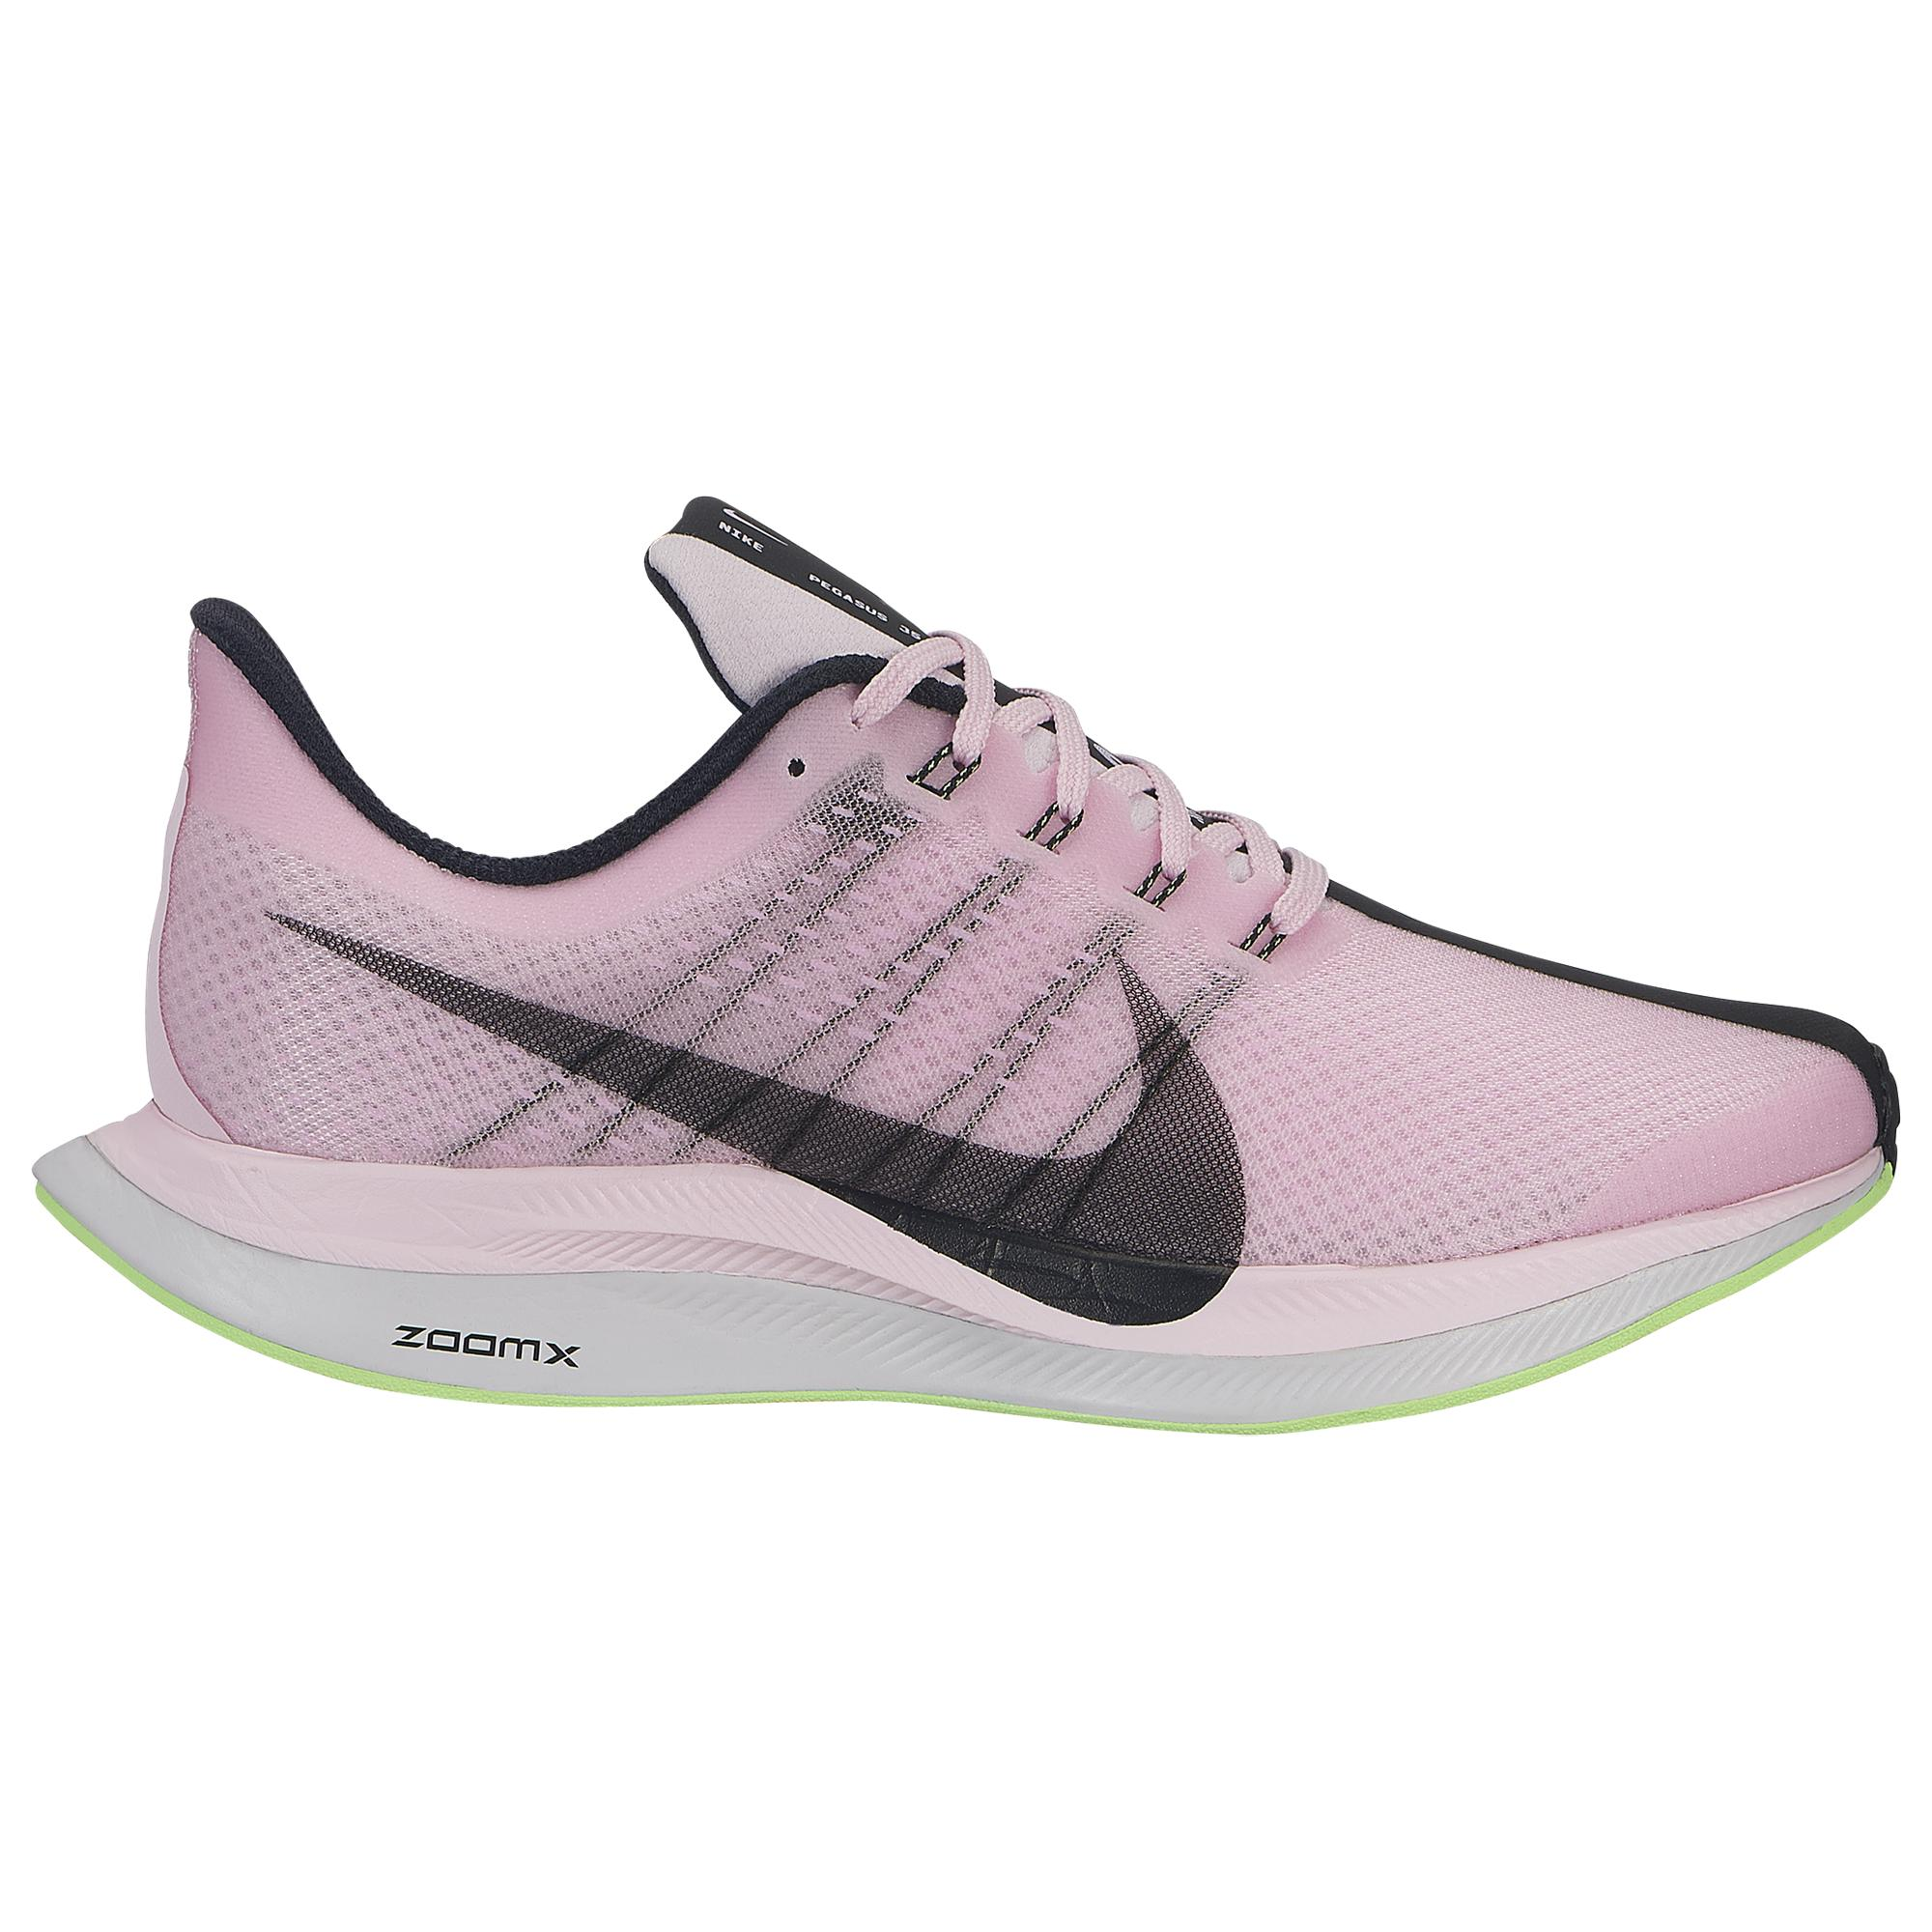 4805228243d4 Lyst - Nike Air Zoom Pegasus 35 Turbo Trainers in Pink - Save 14%